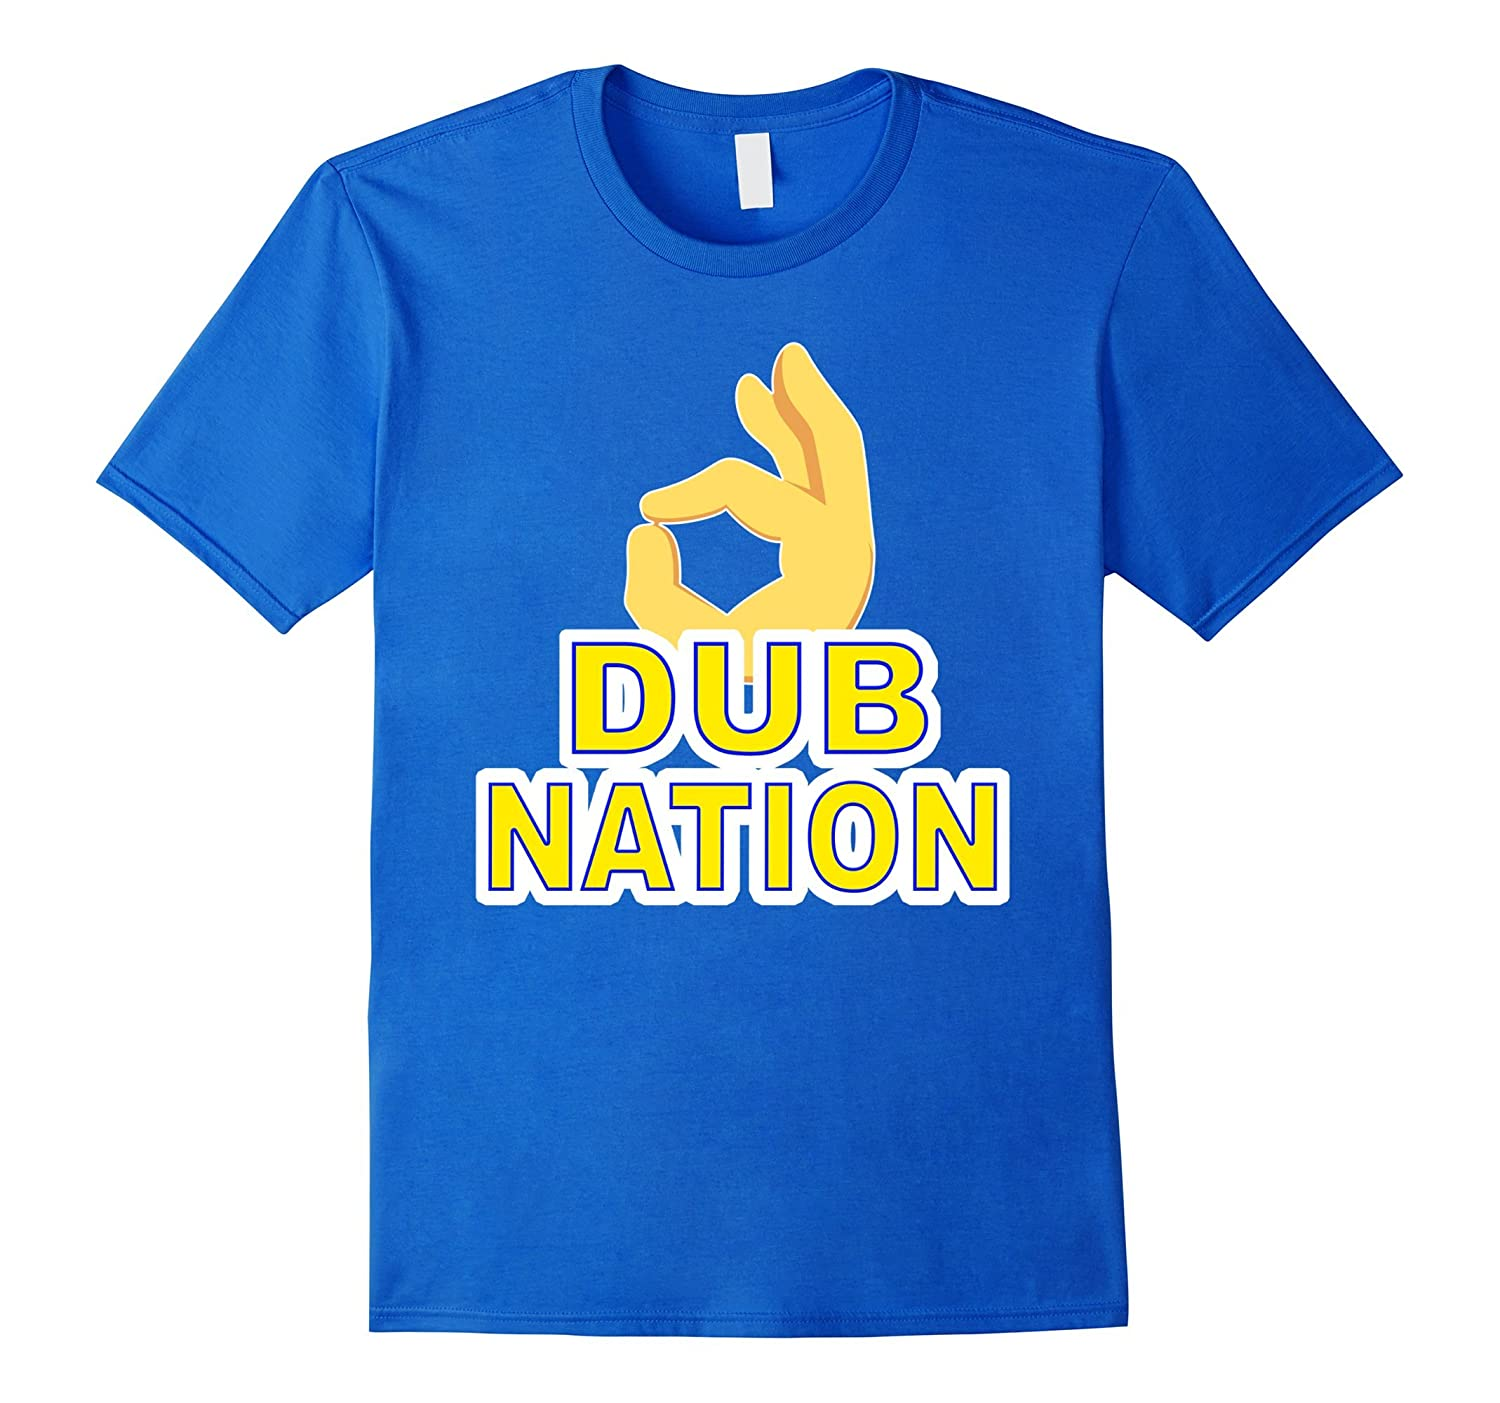 DUB NATION THROW YOUR 3S UP T SHIRT-FL